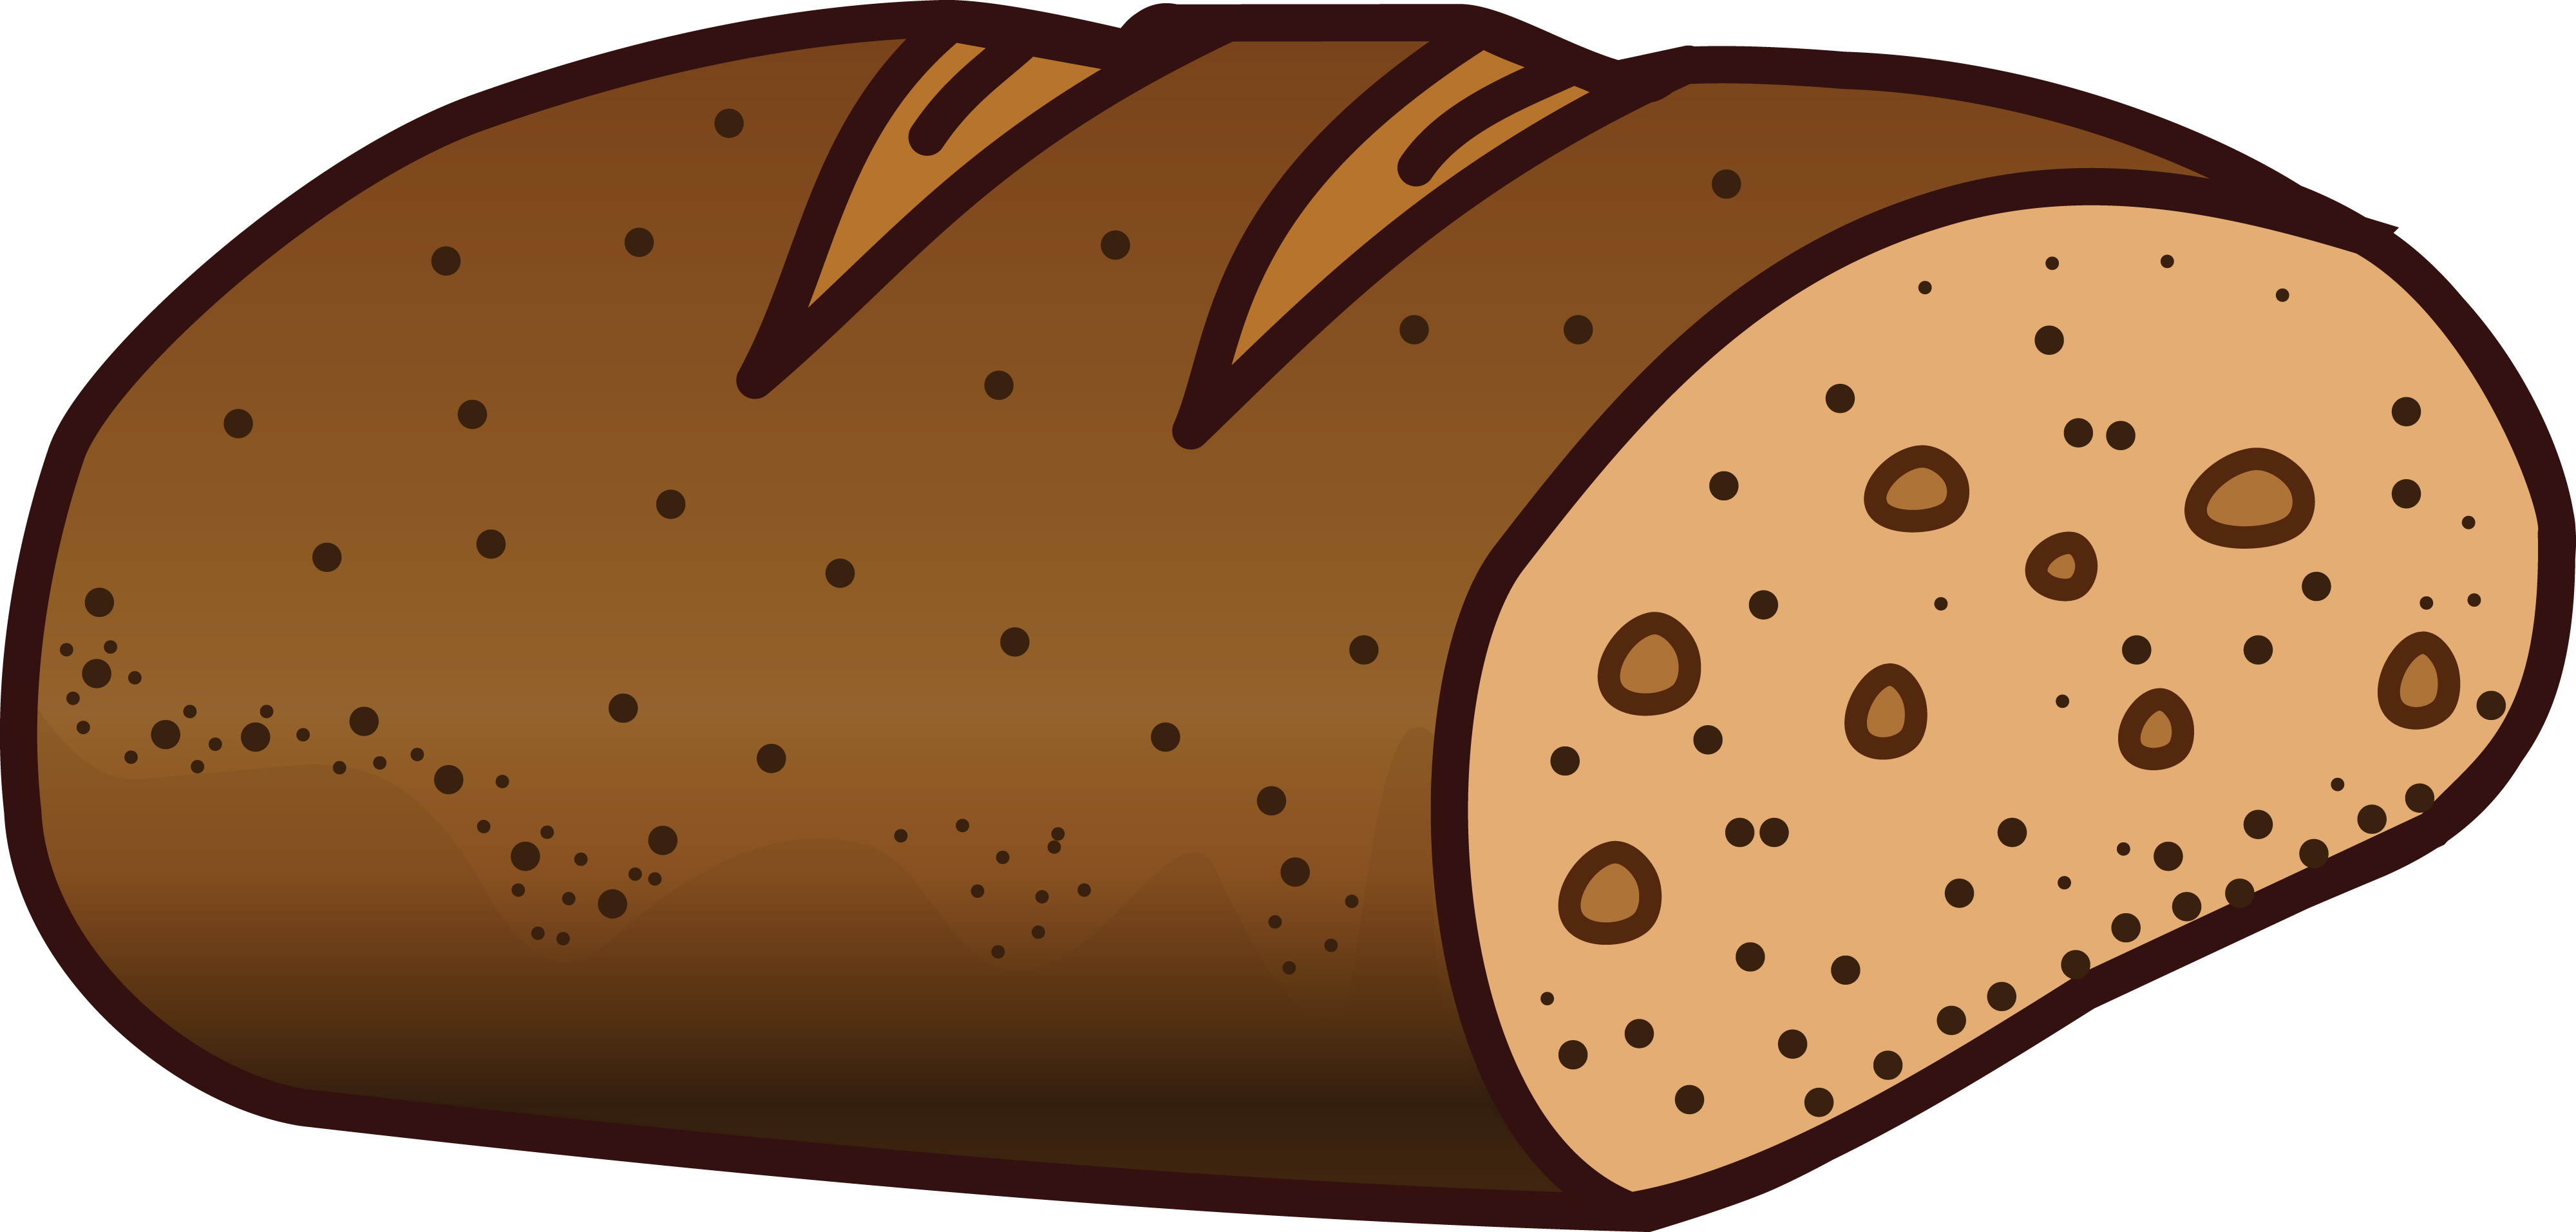 Free Clipart Of bread.